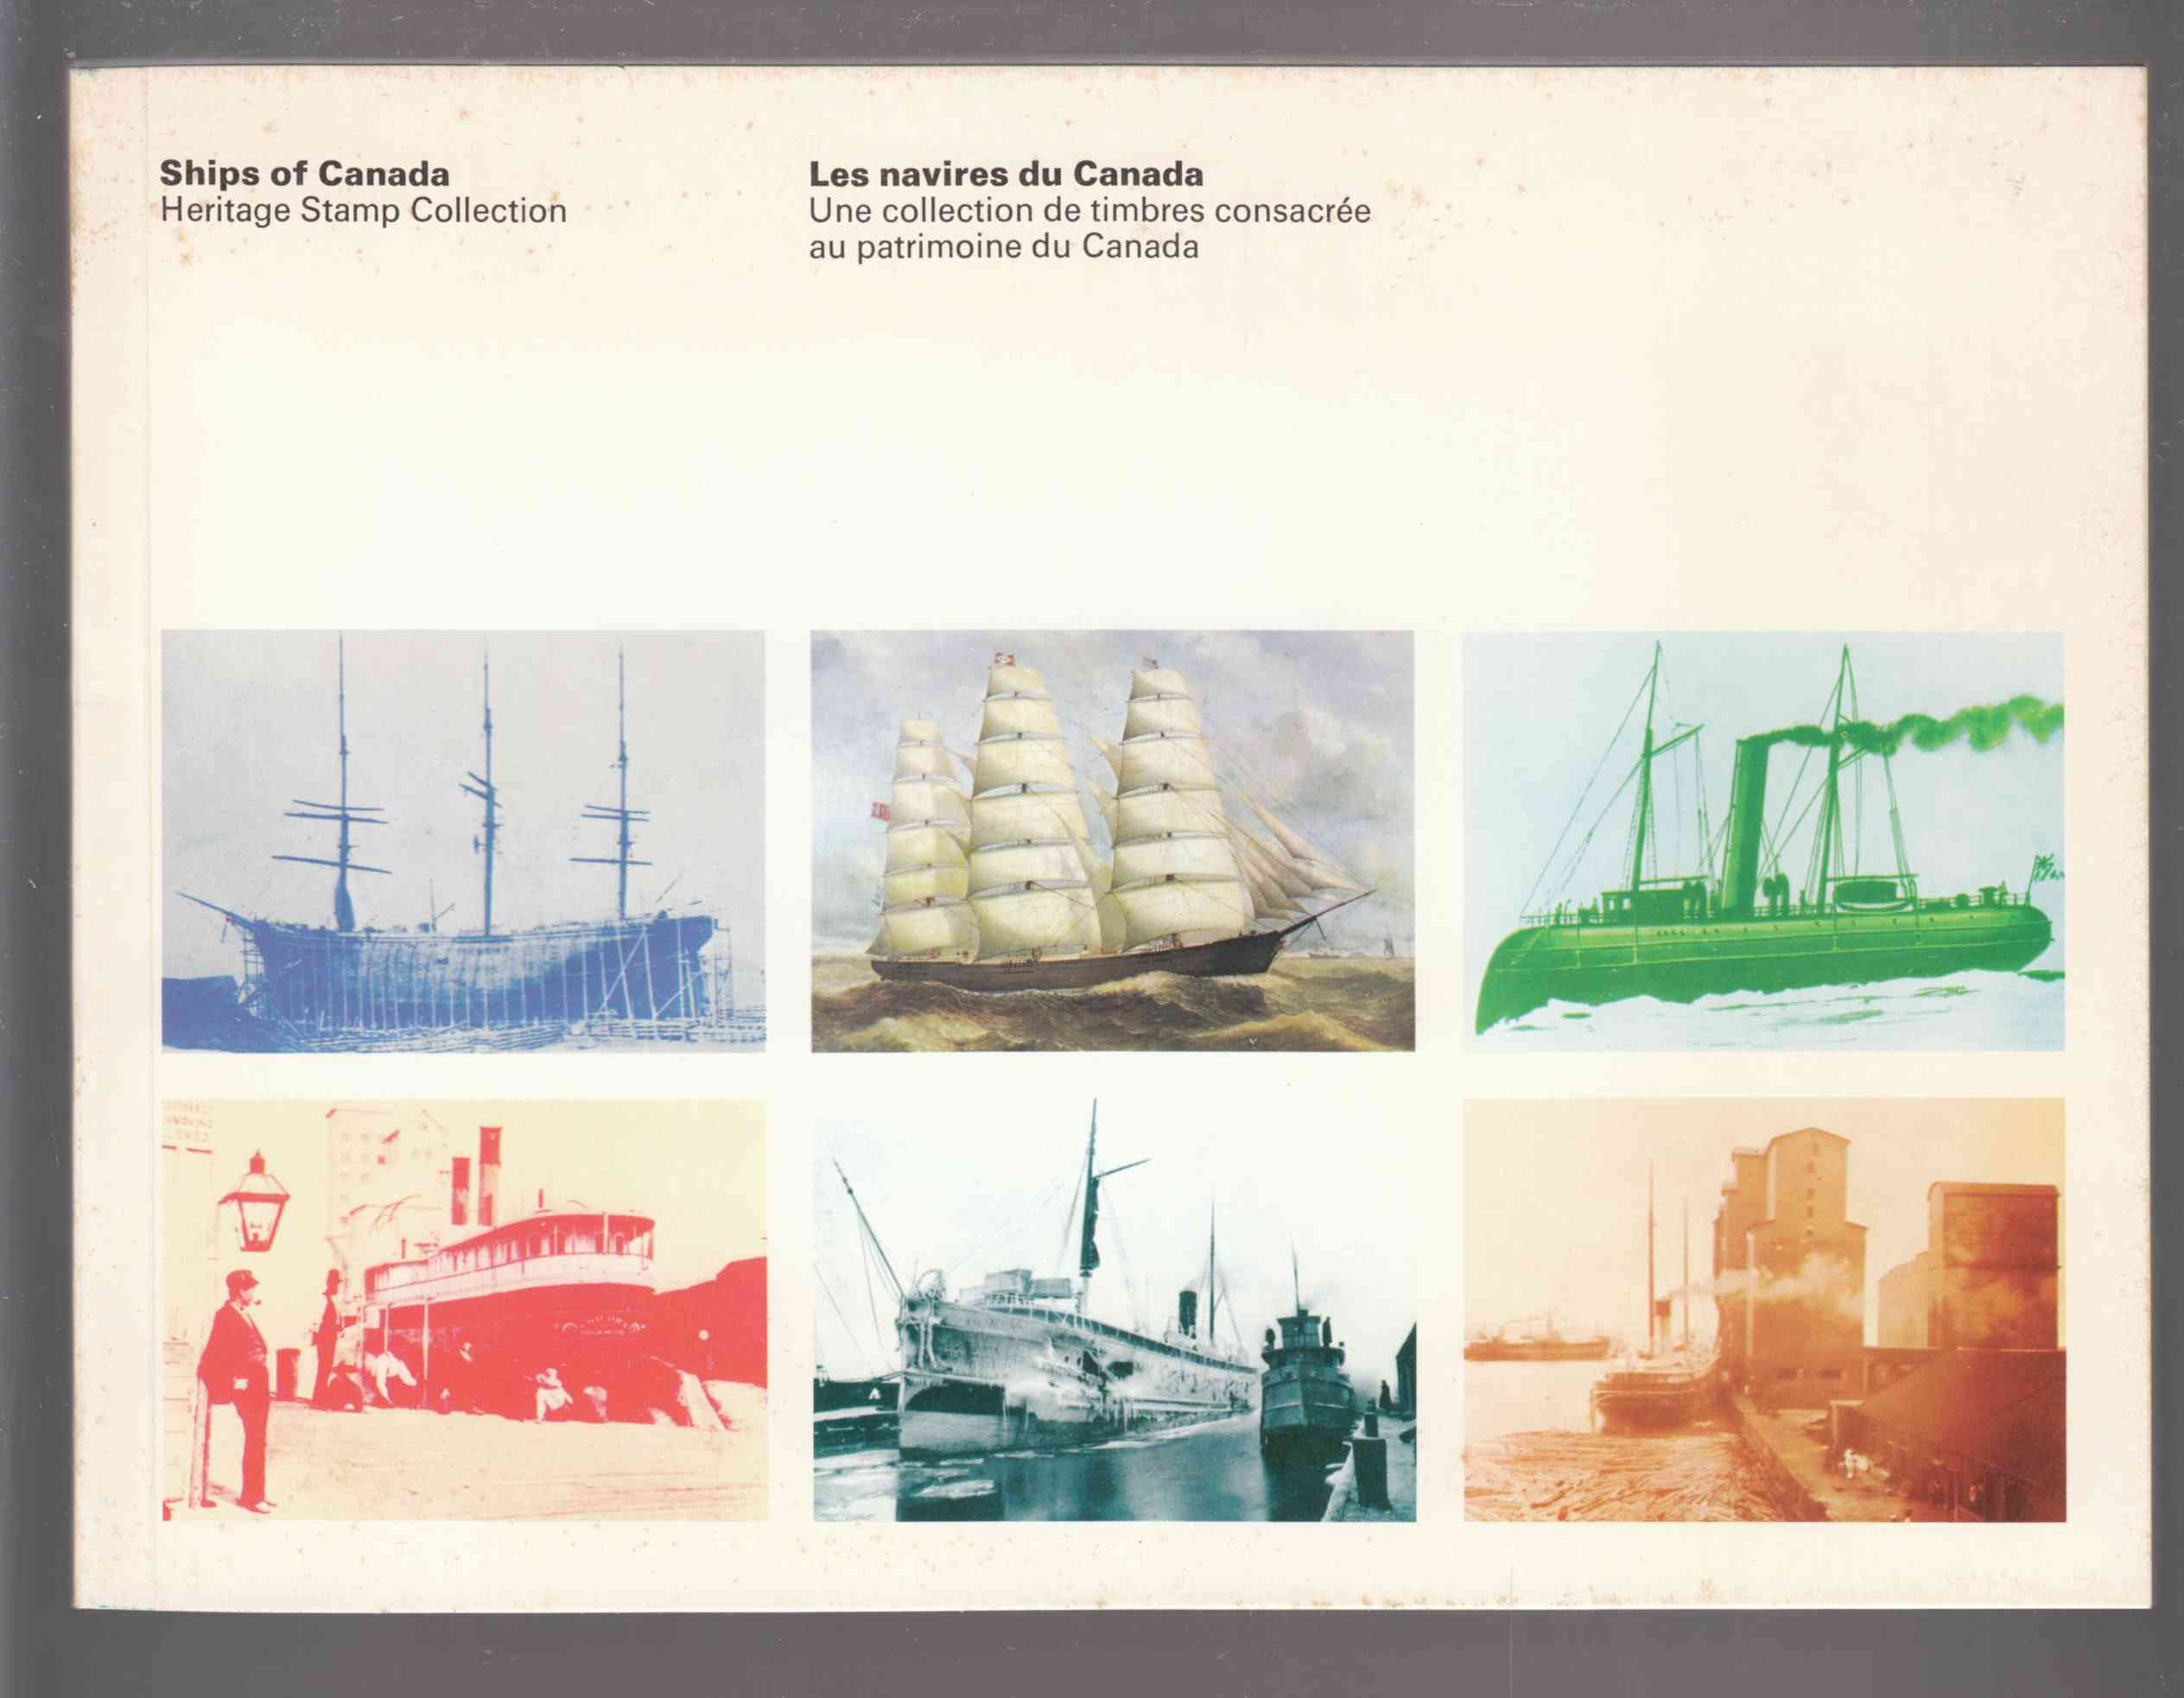 Image for Ships of Canada: Historic Stamp Collection / Les Naivires Du Canada: Une Collection De Timbres Consacree Au Patrimoine Du Canada